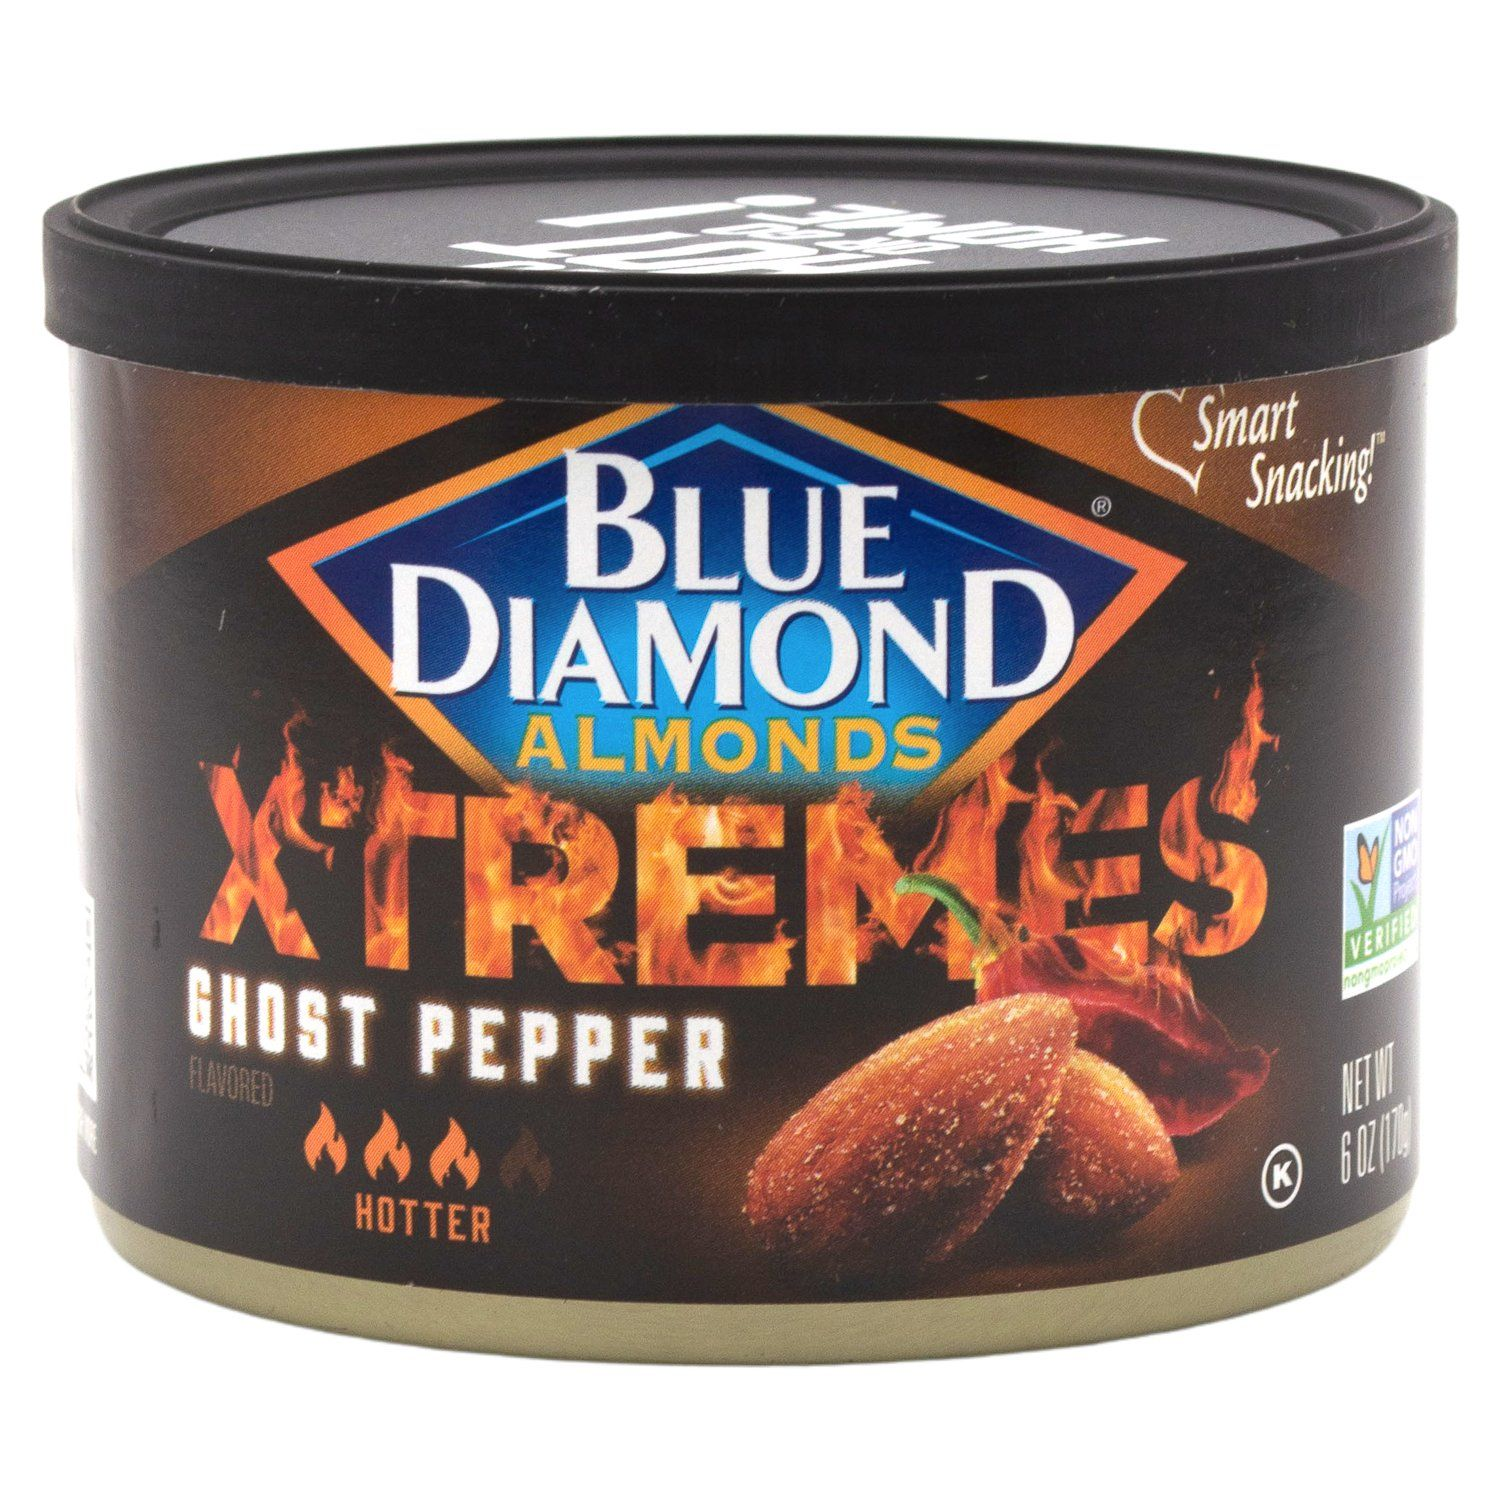 Blue Diamond Almonds Xtremes Blue Diamond Almonds Ghost Pepper 6 Ounce